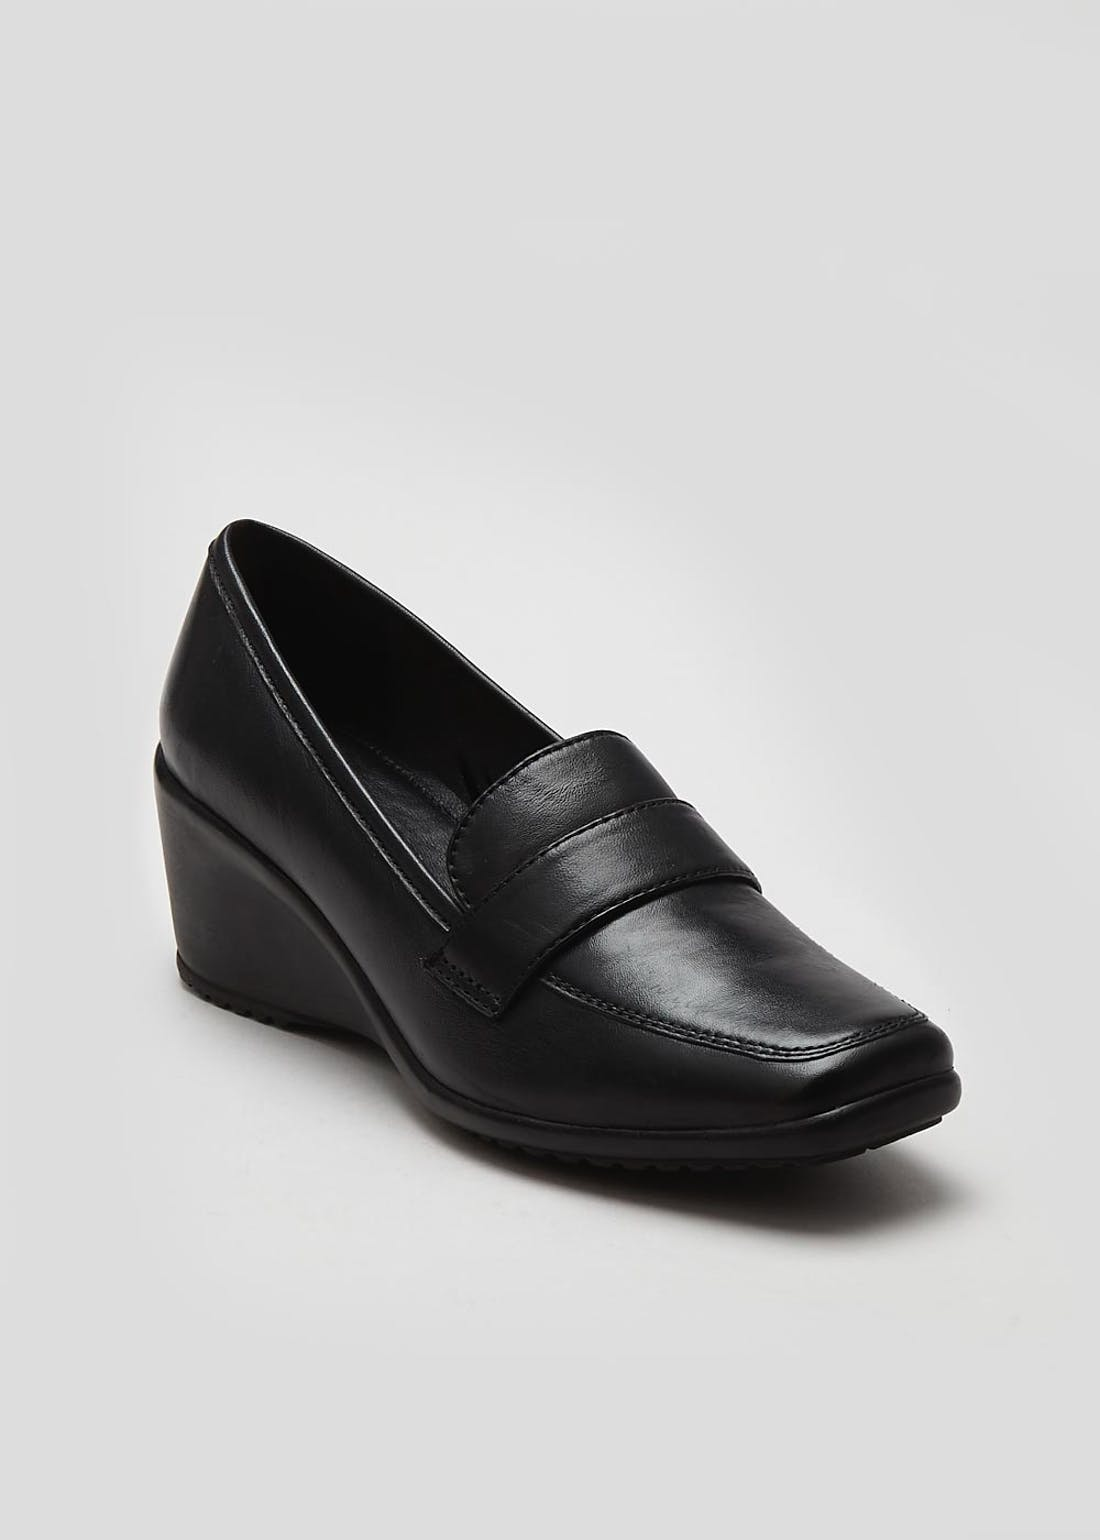 Soleflex Black Real Leather Wedge Shoes